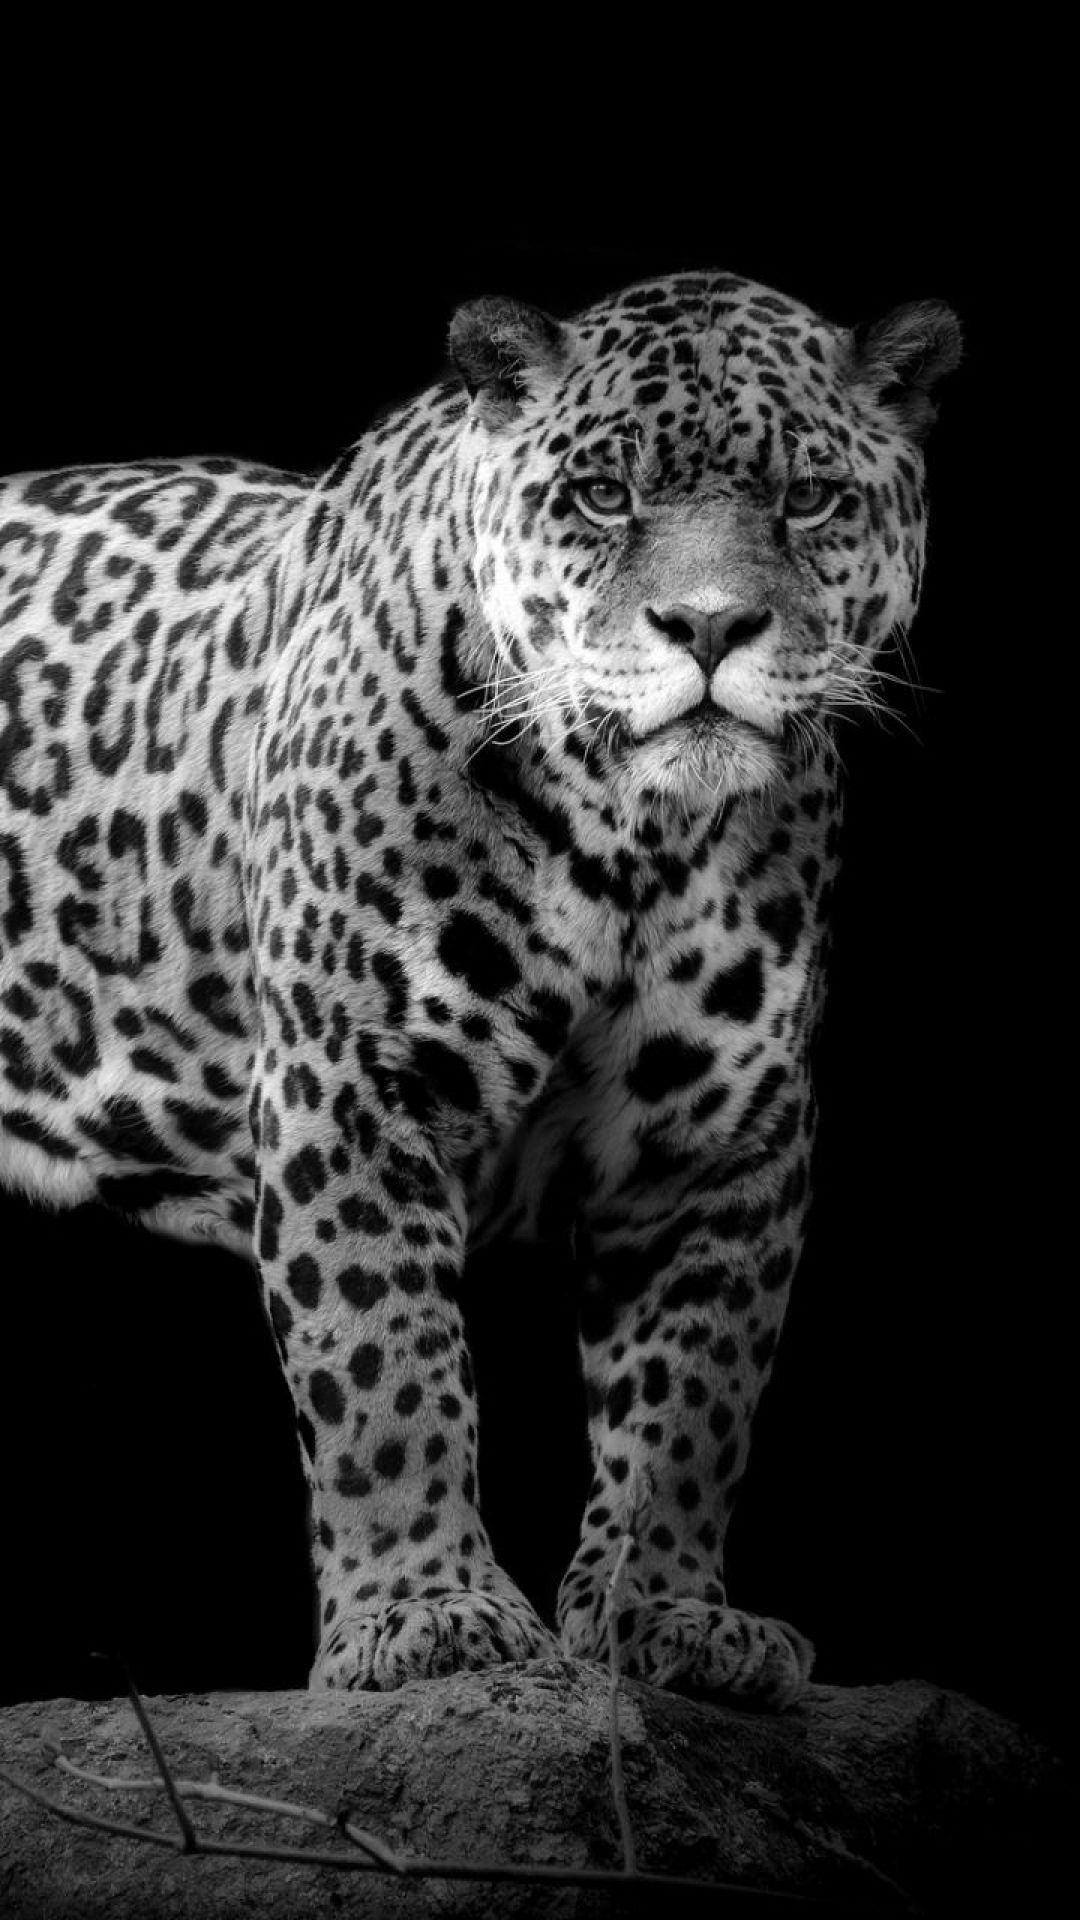 Android Iphone Desktop Hd Backgrounds Wallpapers Jaguar Wallpaper For Mobile 3118768 Hd Wallpaper Backgrounds Download